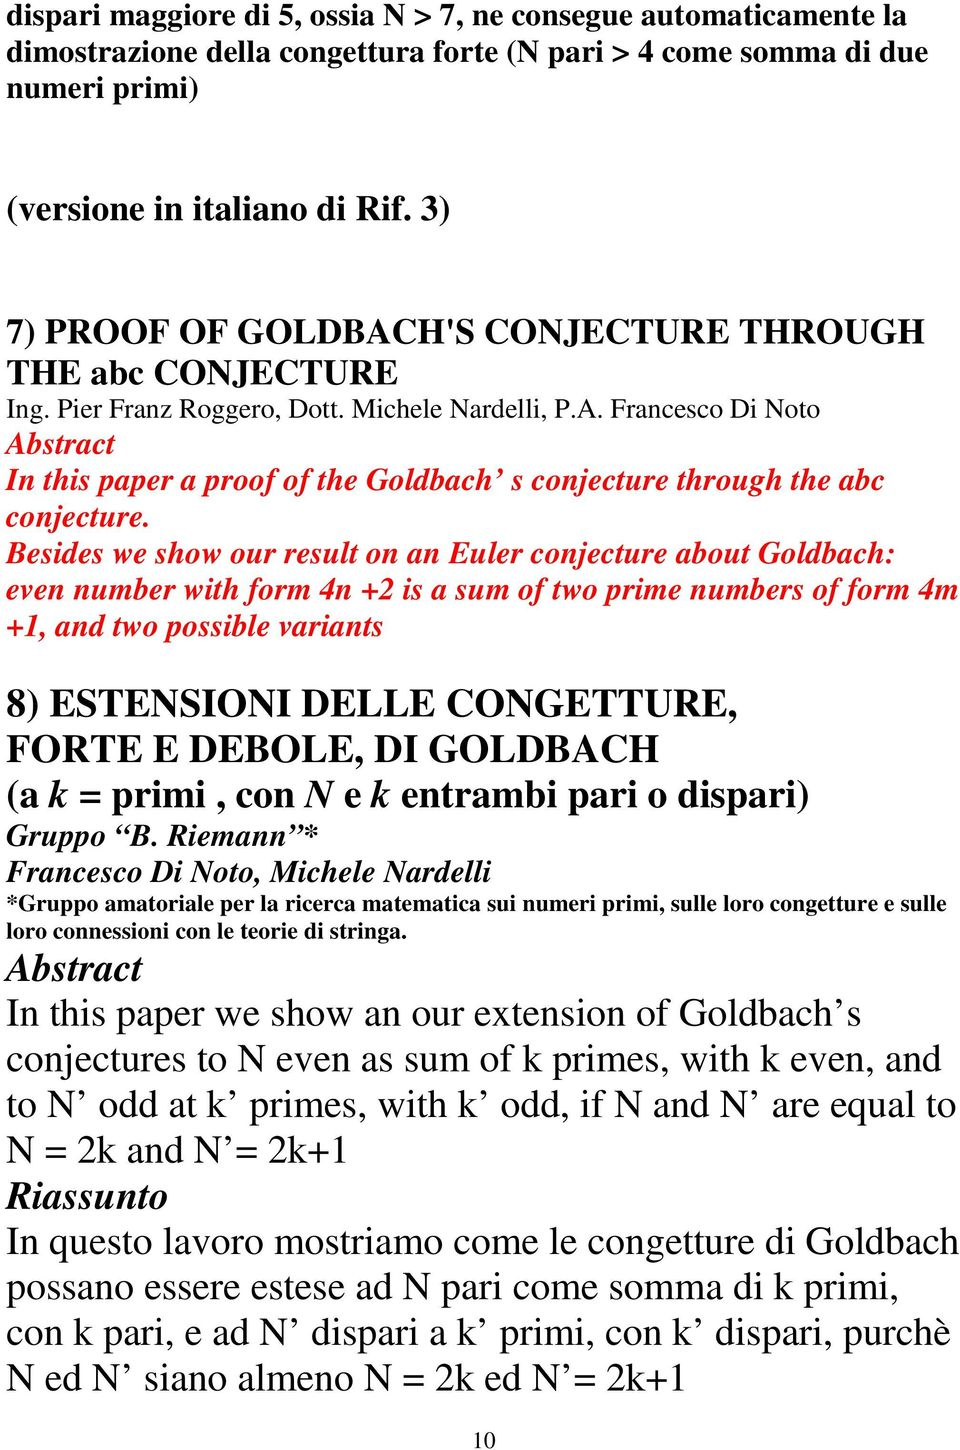 Besides we show our result on an Euler conjecture about Goldbach: even number with form 4n +2 is a sum of two prime numbers of form 4m +1, and two possible variants 8) ESTENSIONI DELLE CONGETTURE,